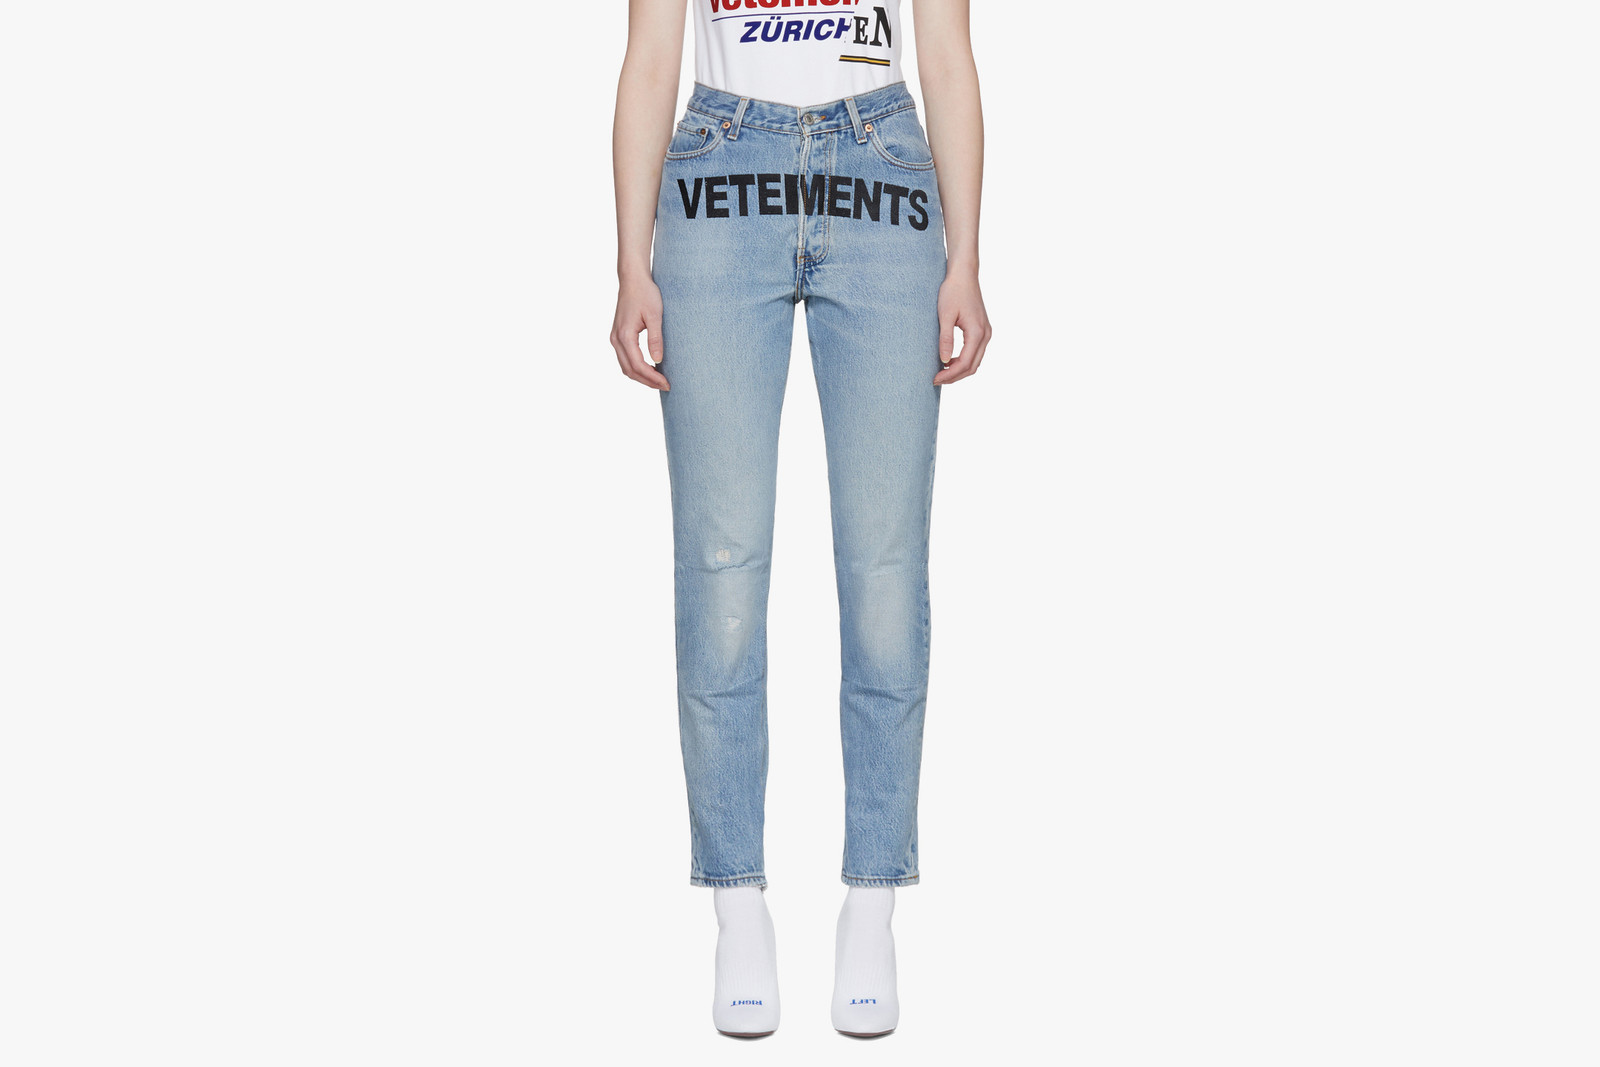 Luxury Denim from Balenciaga, Vetements Versace Helmut Lang Jeans Gosha Rubchinskiy Alexander Wang